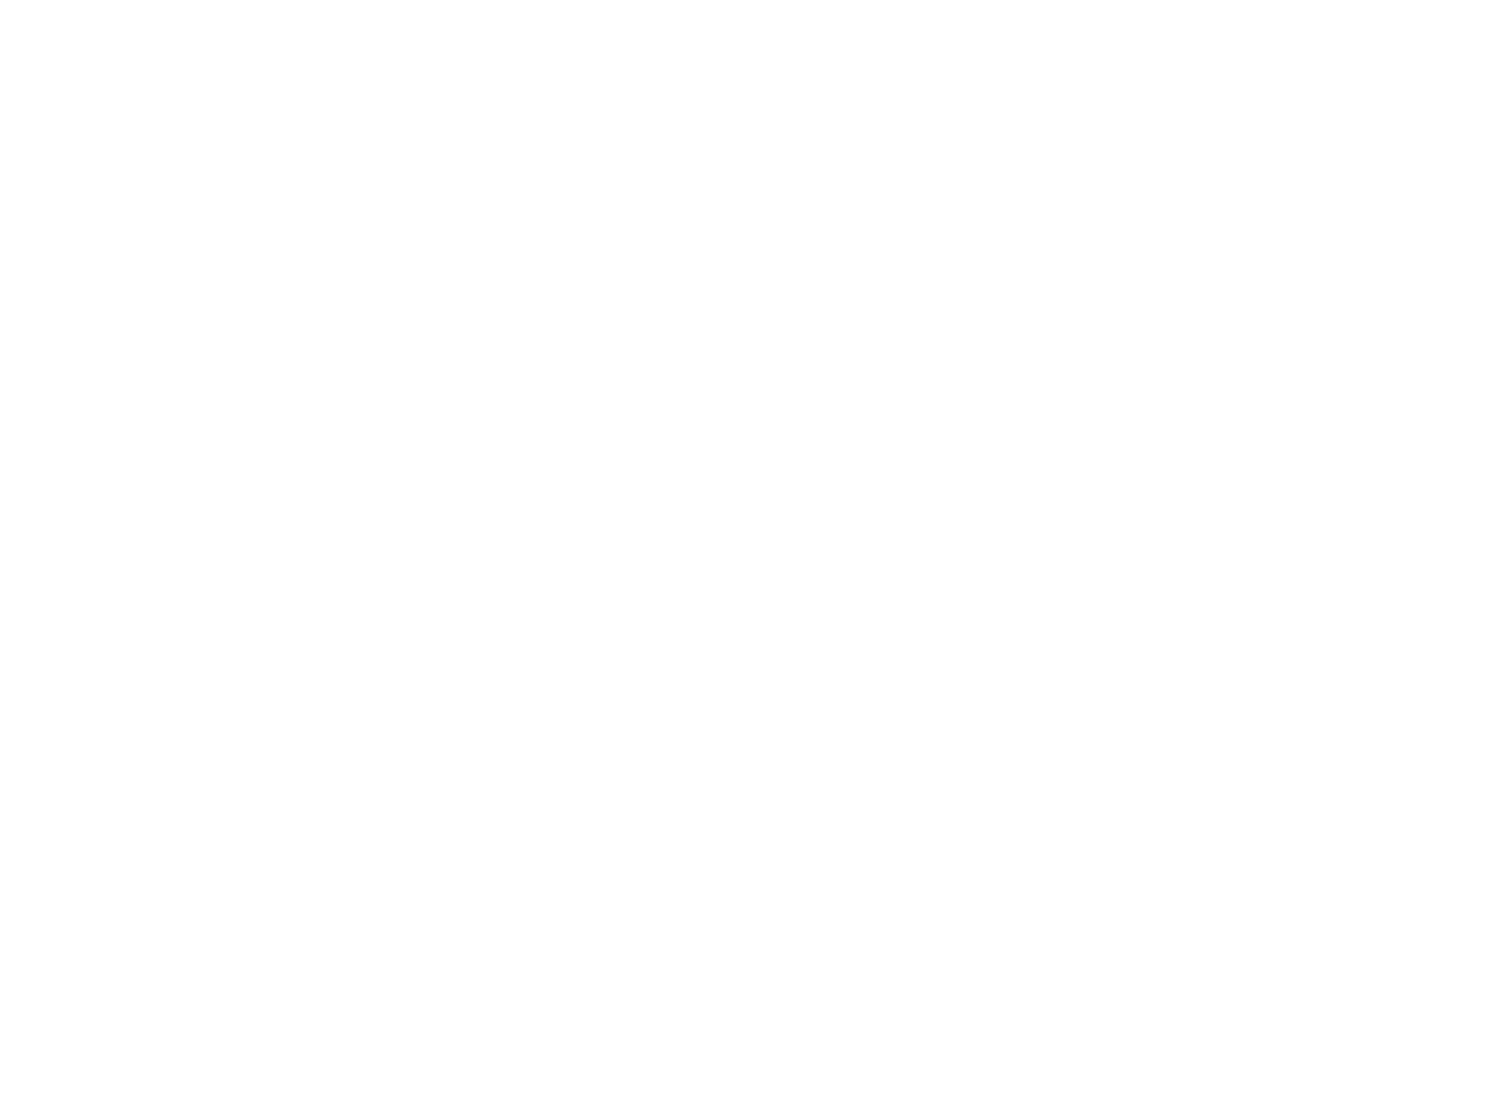 Ivy Russell Education